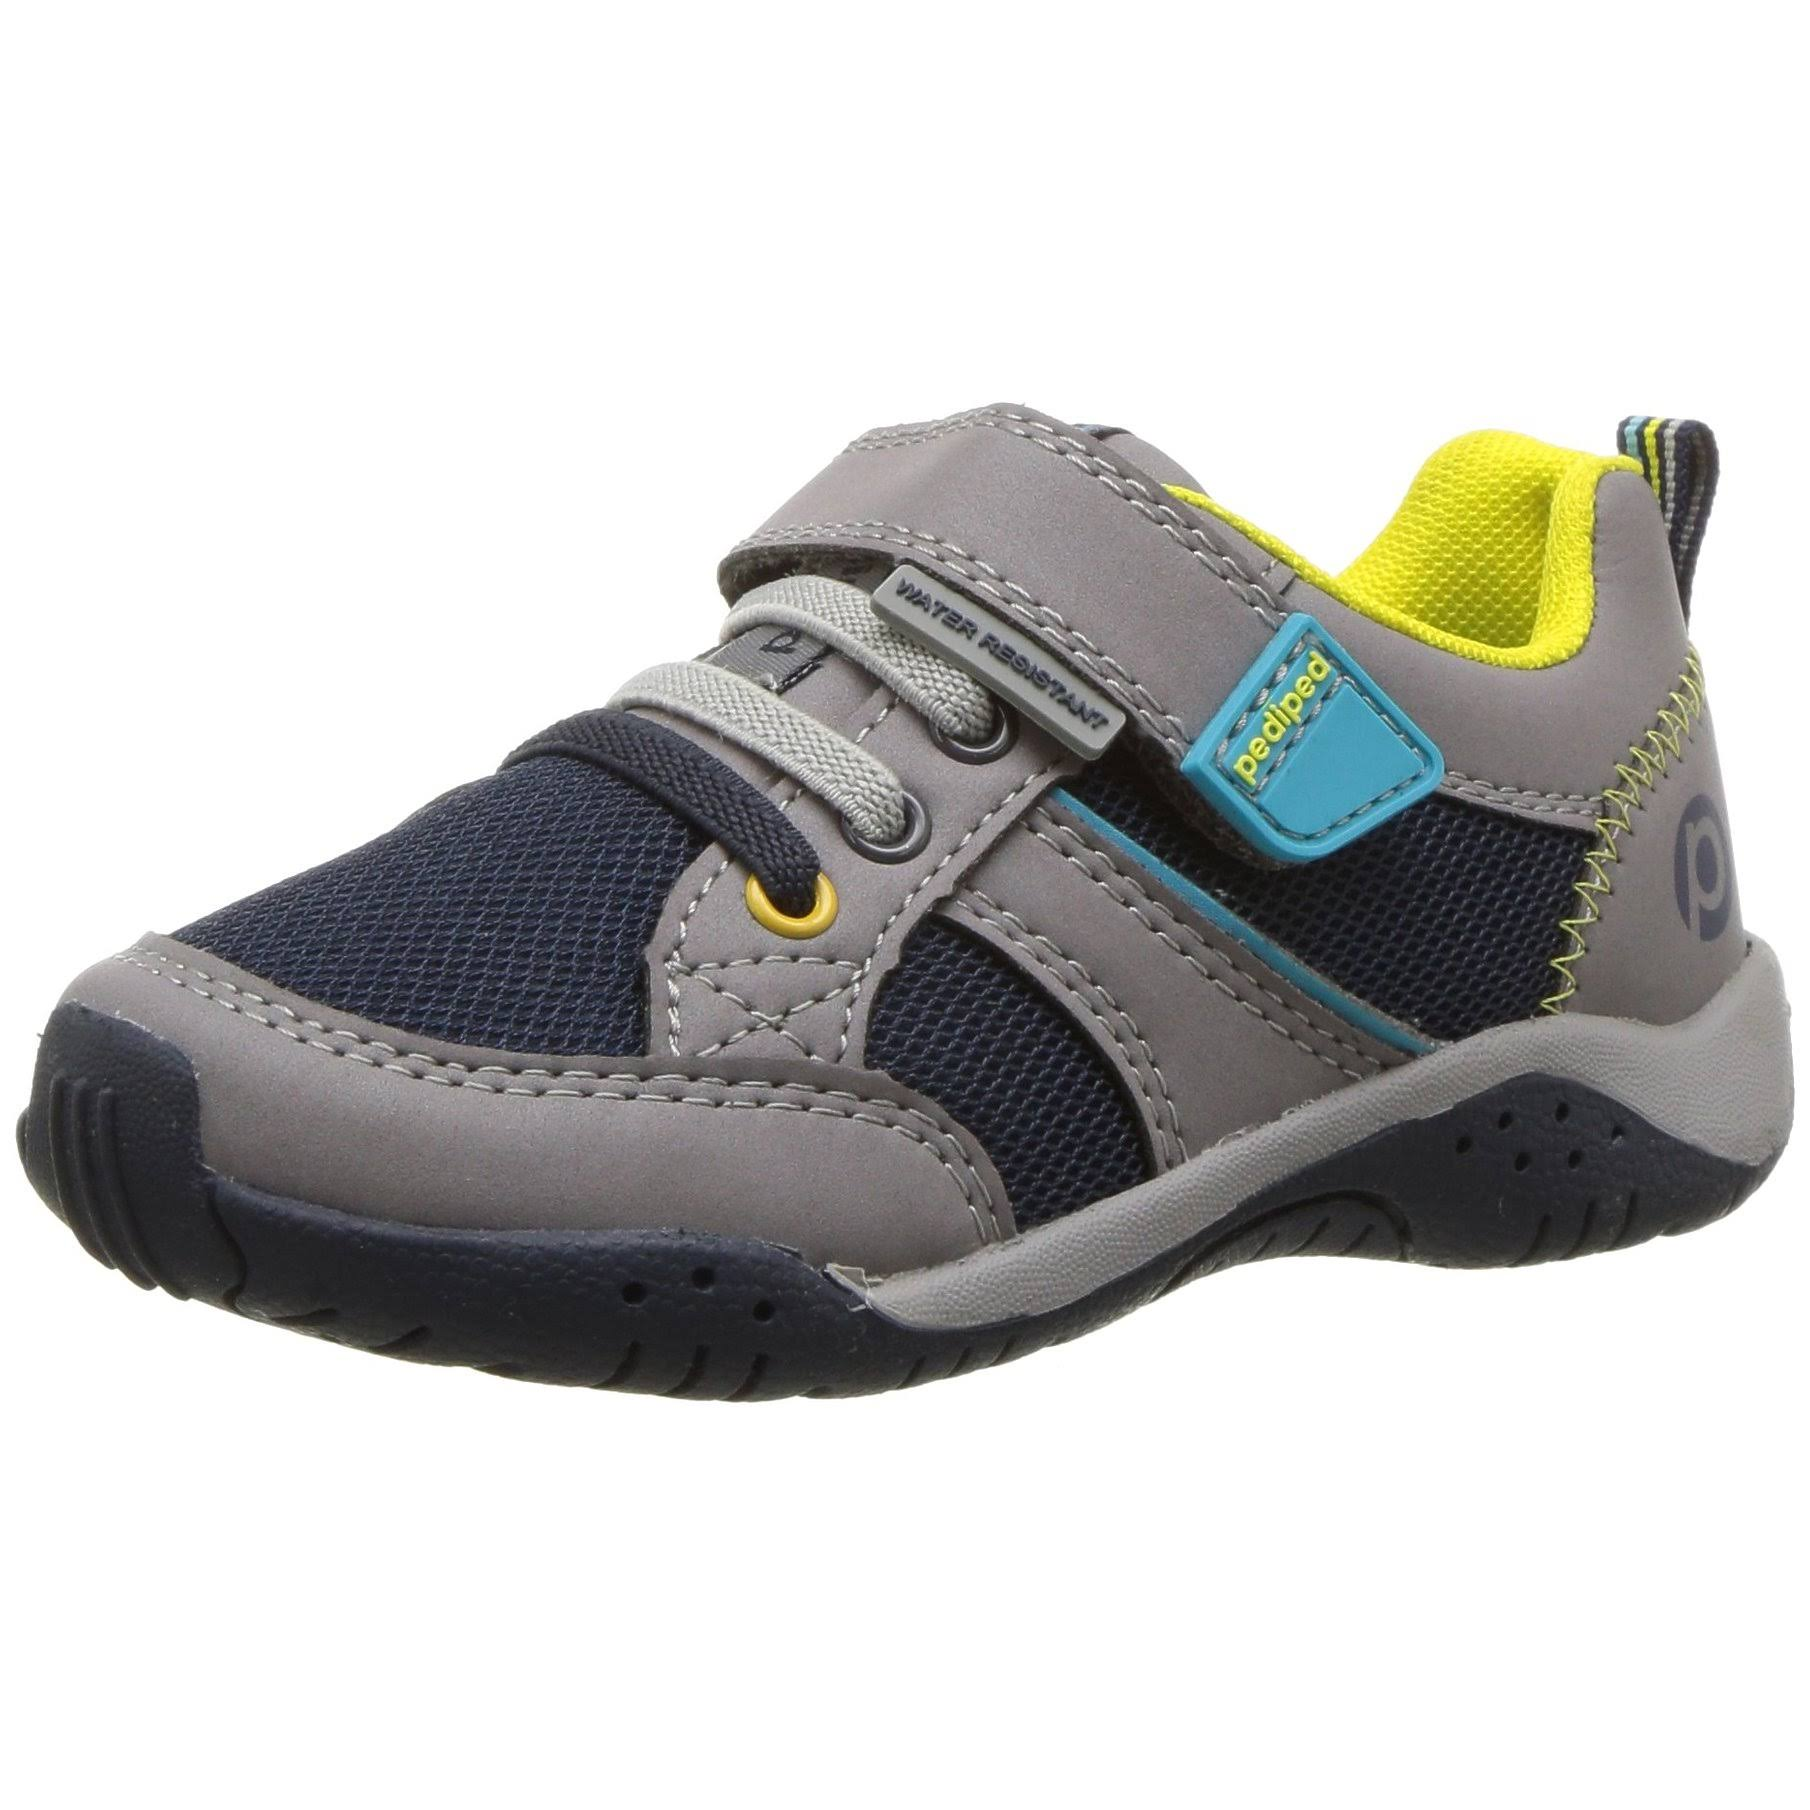 pediped Baby Flex Justice Sneaker, Grey, 24 E EU Toddler (7.5-8 US)